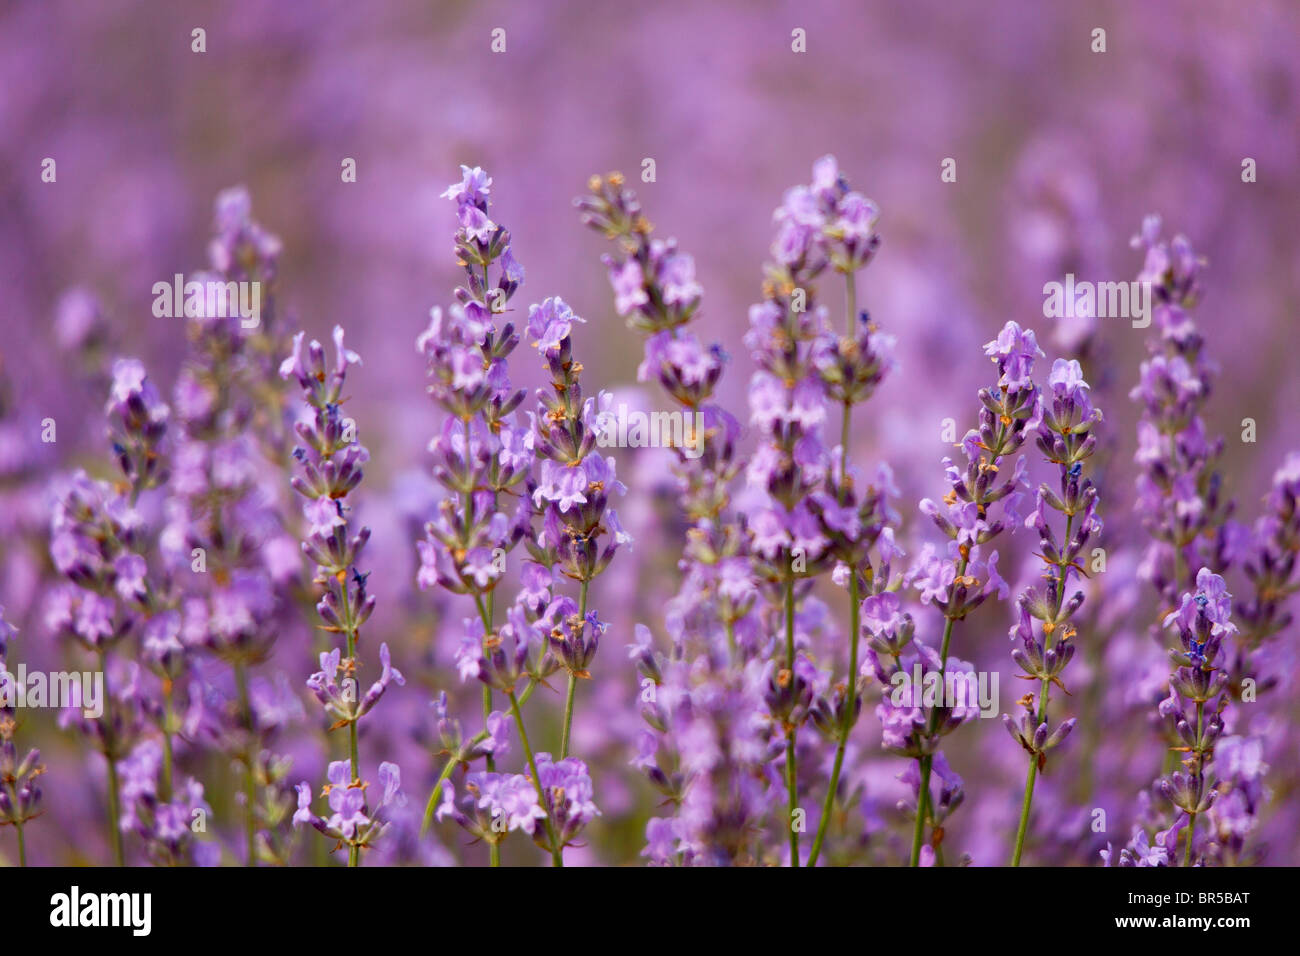 Europe, France, Vaucluse (84), Lavender Field in Provence Stock Photo